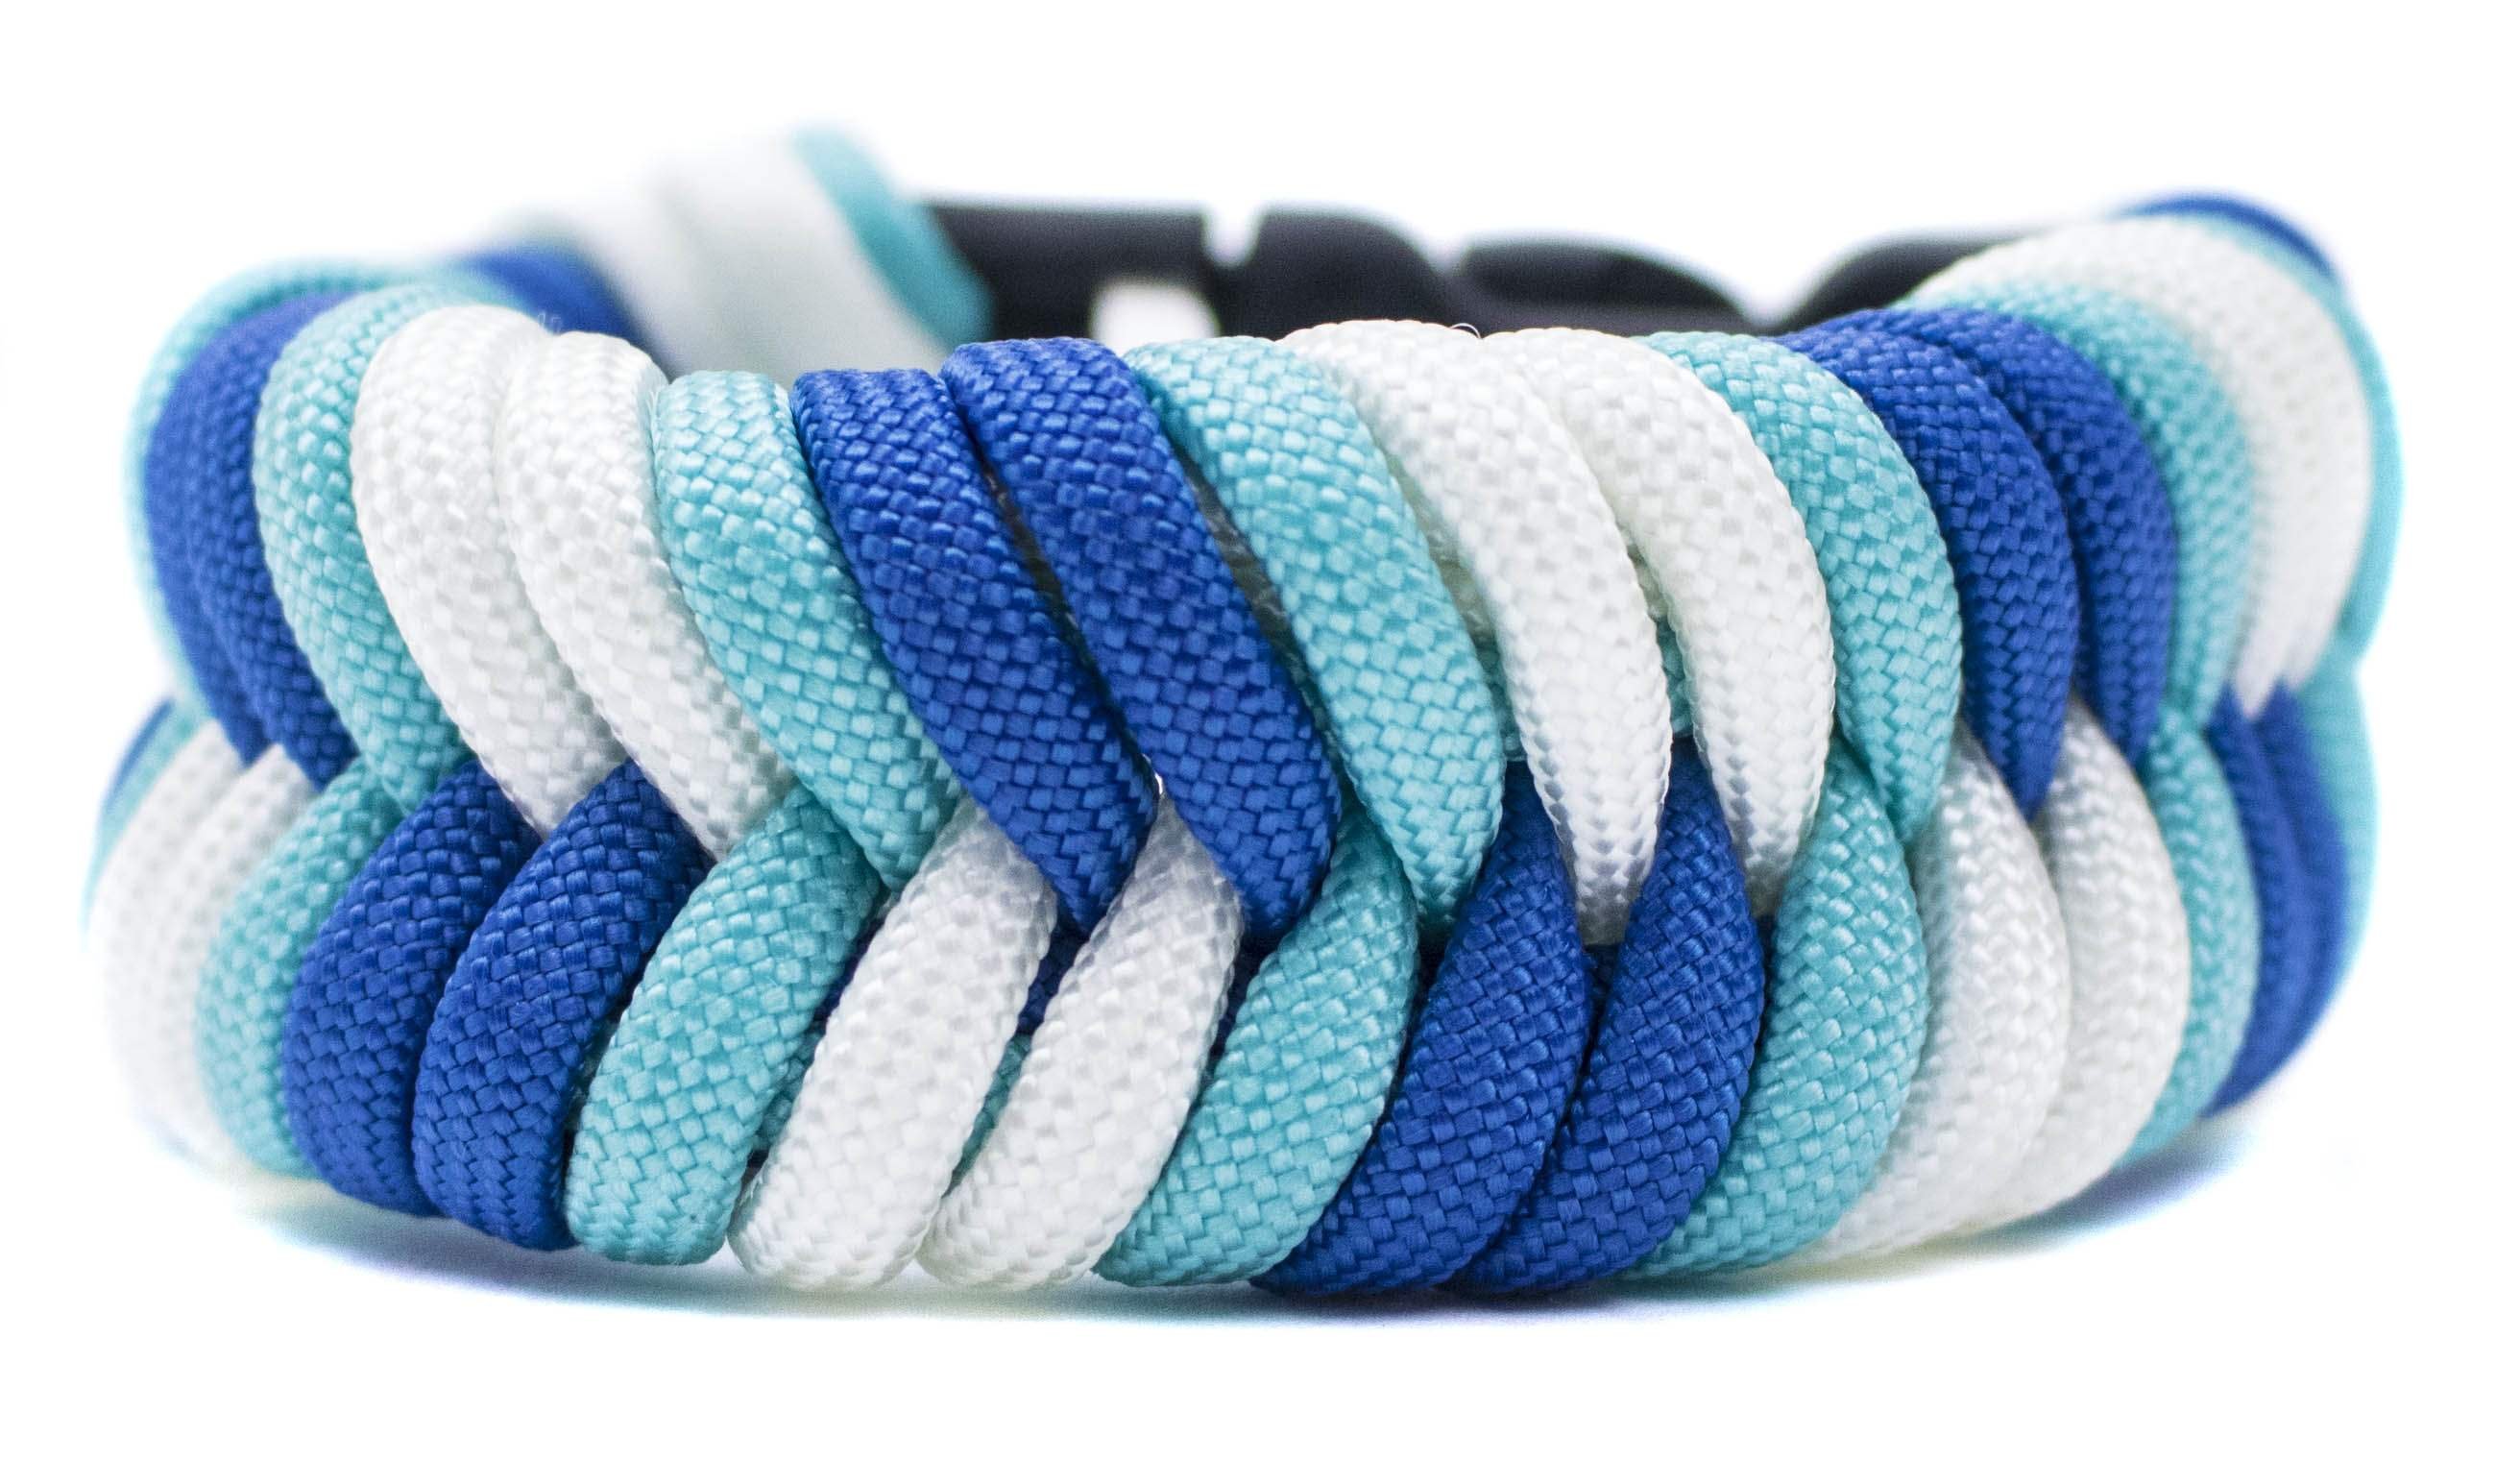 How to make a fishtail bracelet with paracord